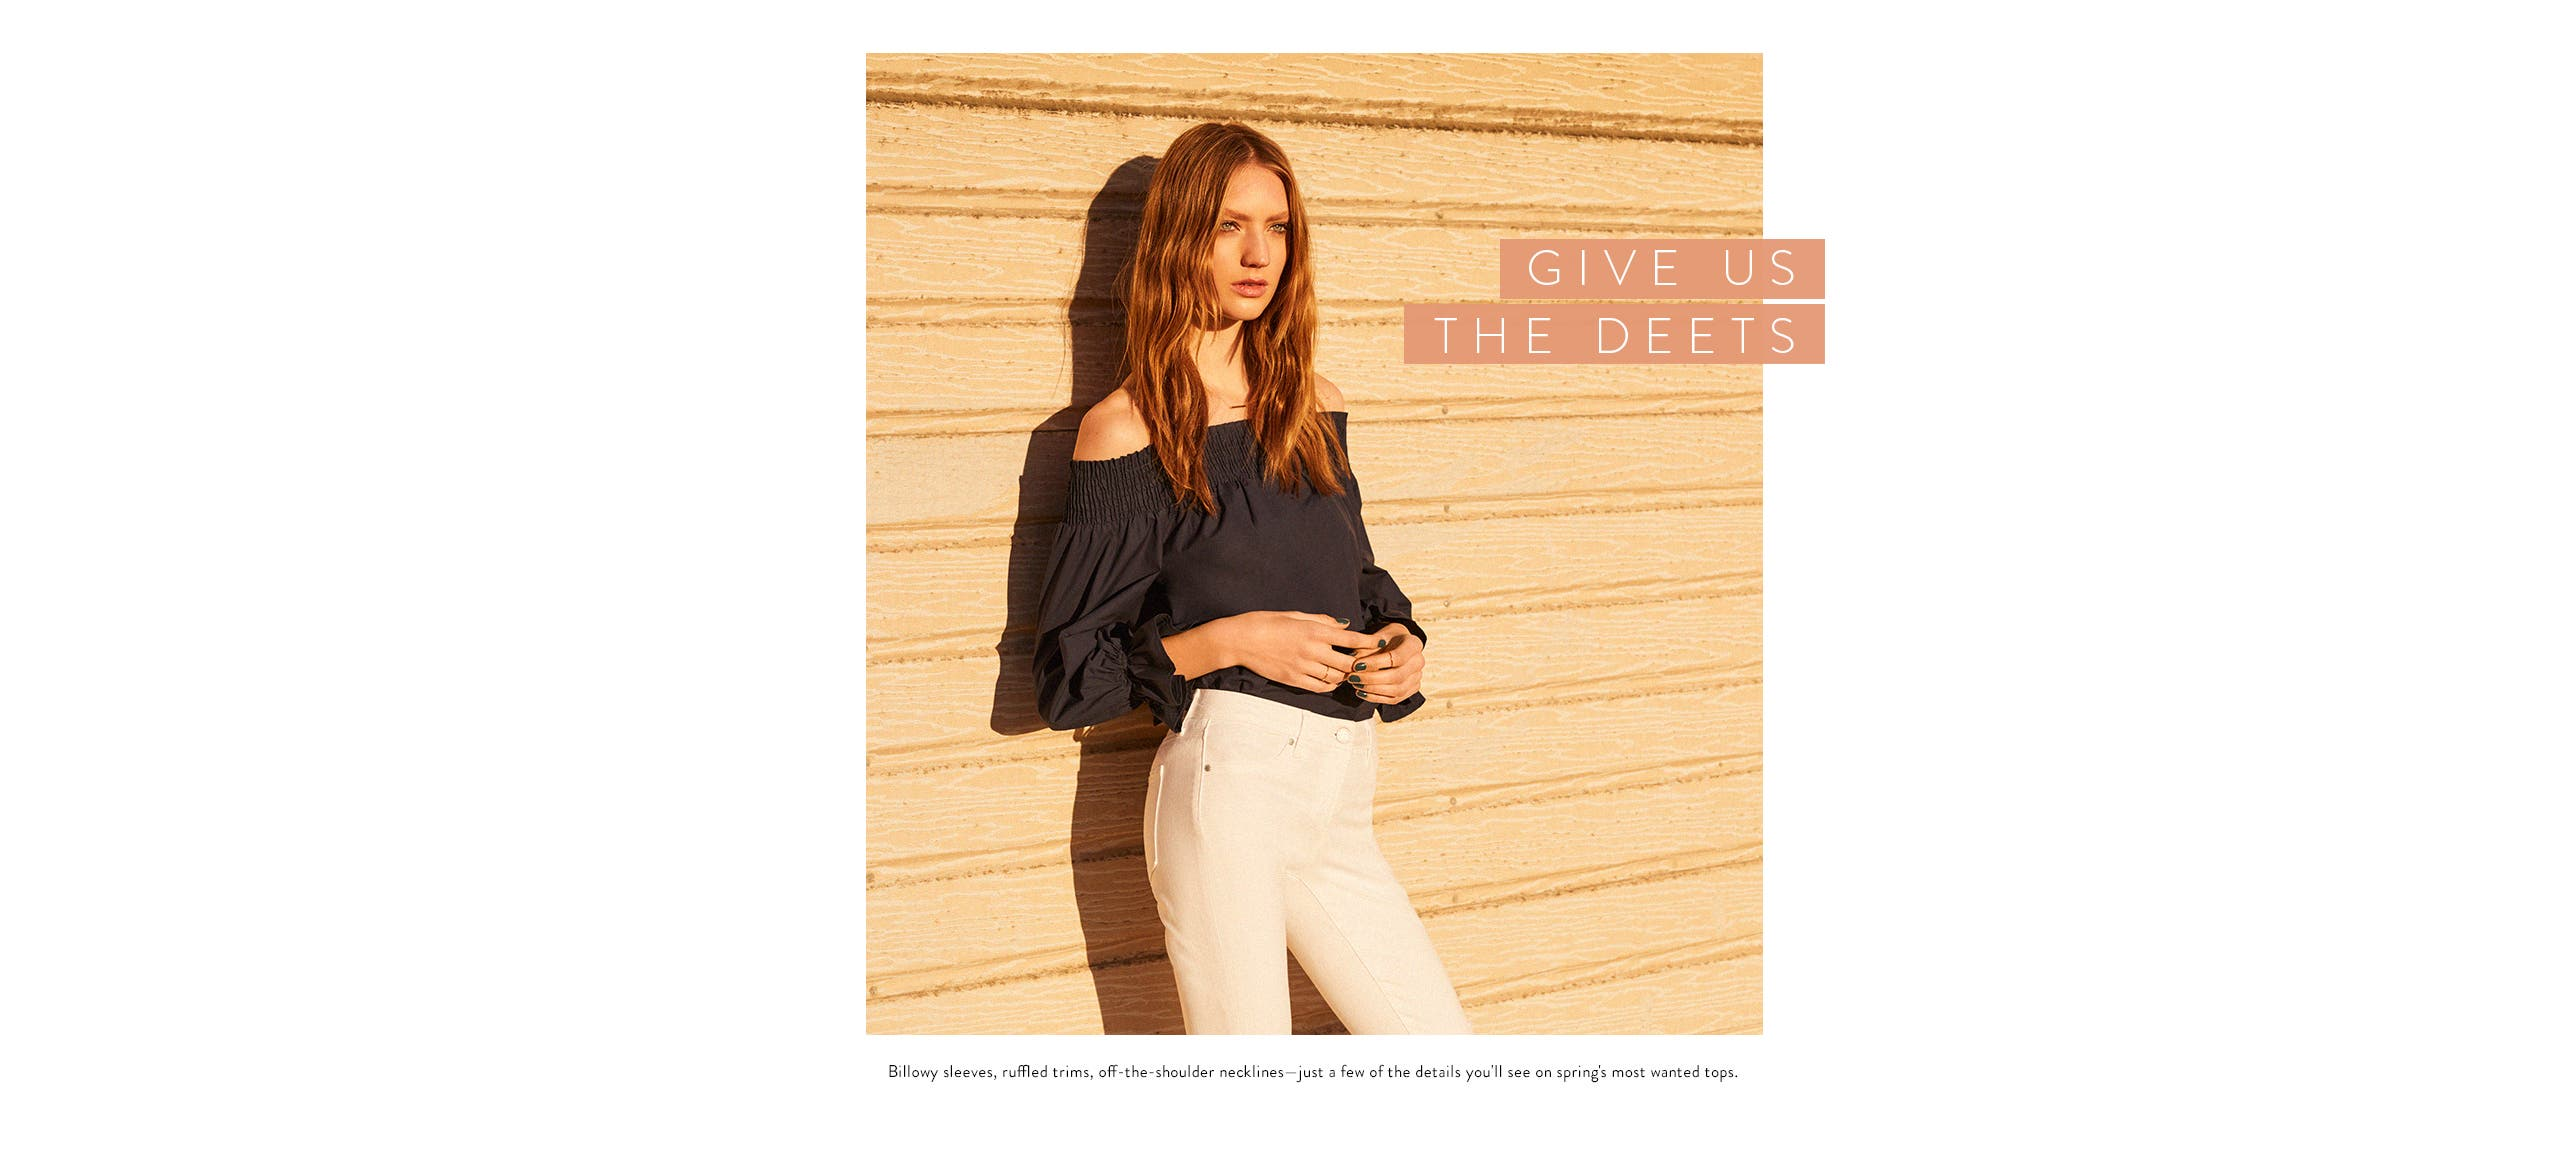 Give us the deets: spring tops with details like billowy sleeves, ruffled trims and off-the-shoulder necklines.